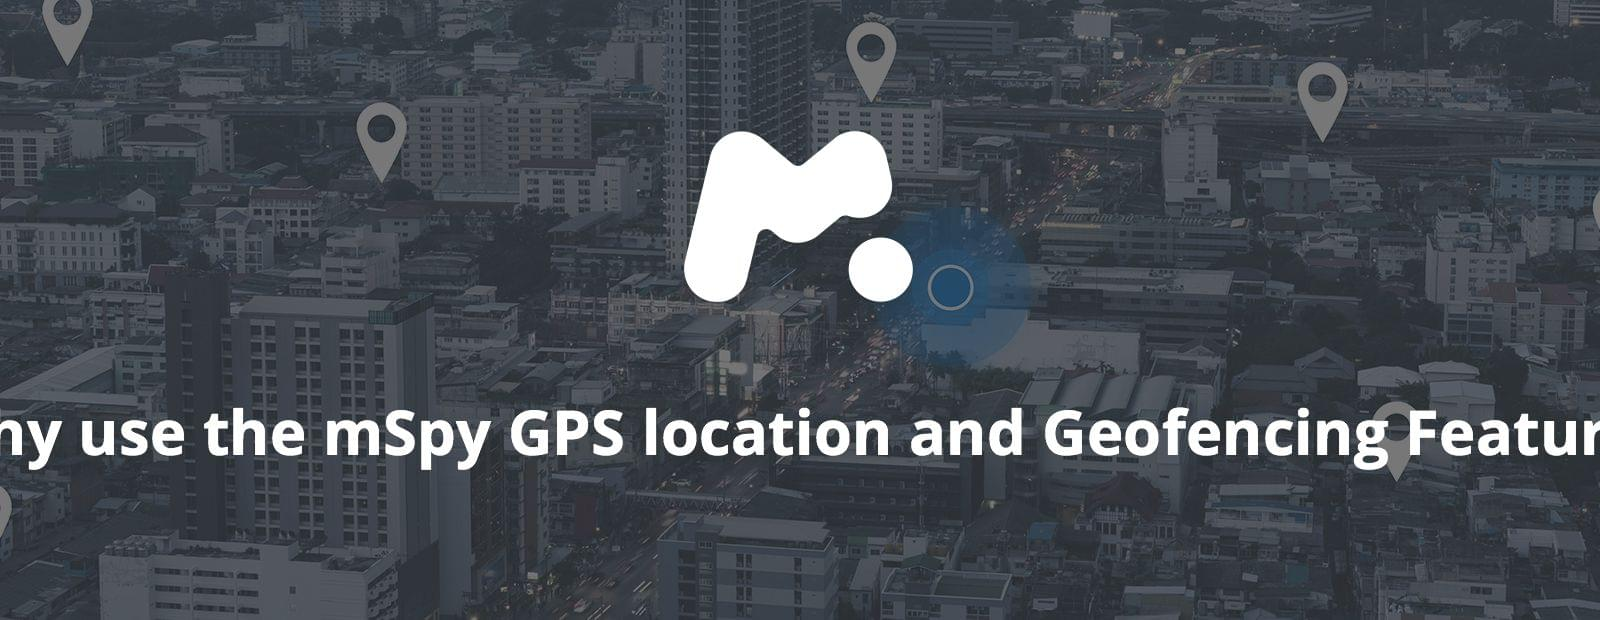 Why use the mSpy GPS location and Geofencing Features